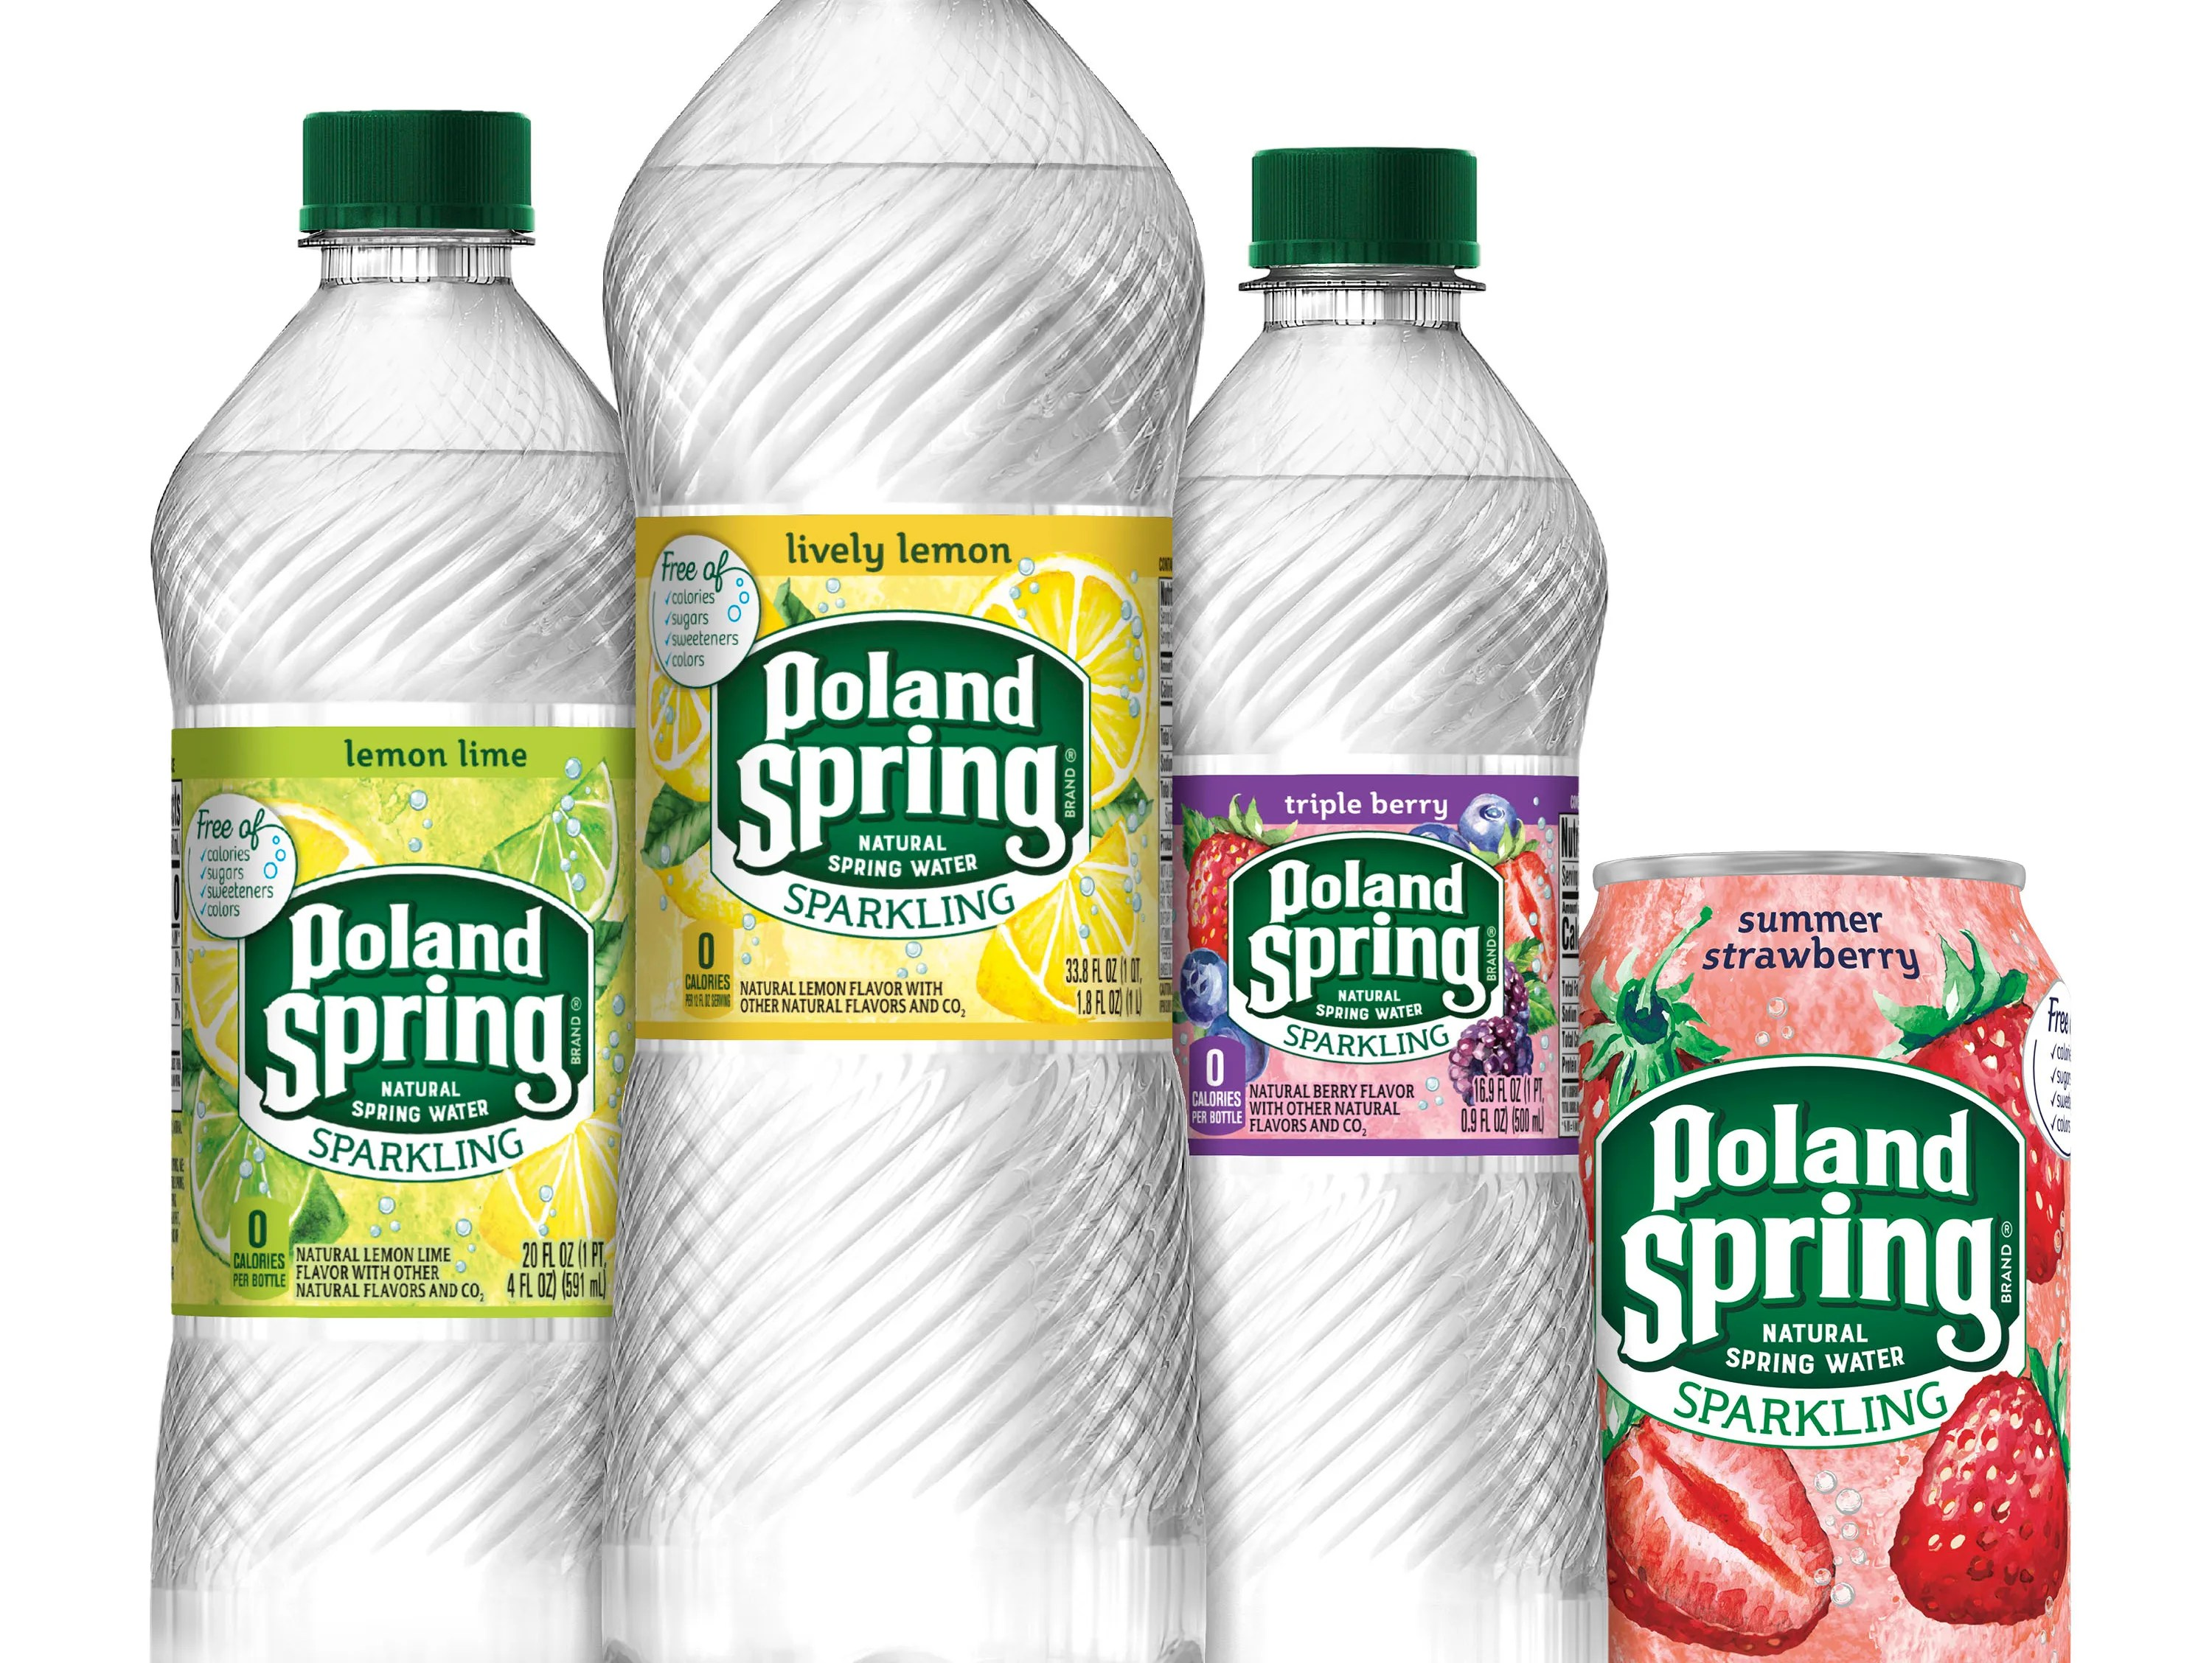 flavored sparkling water sales